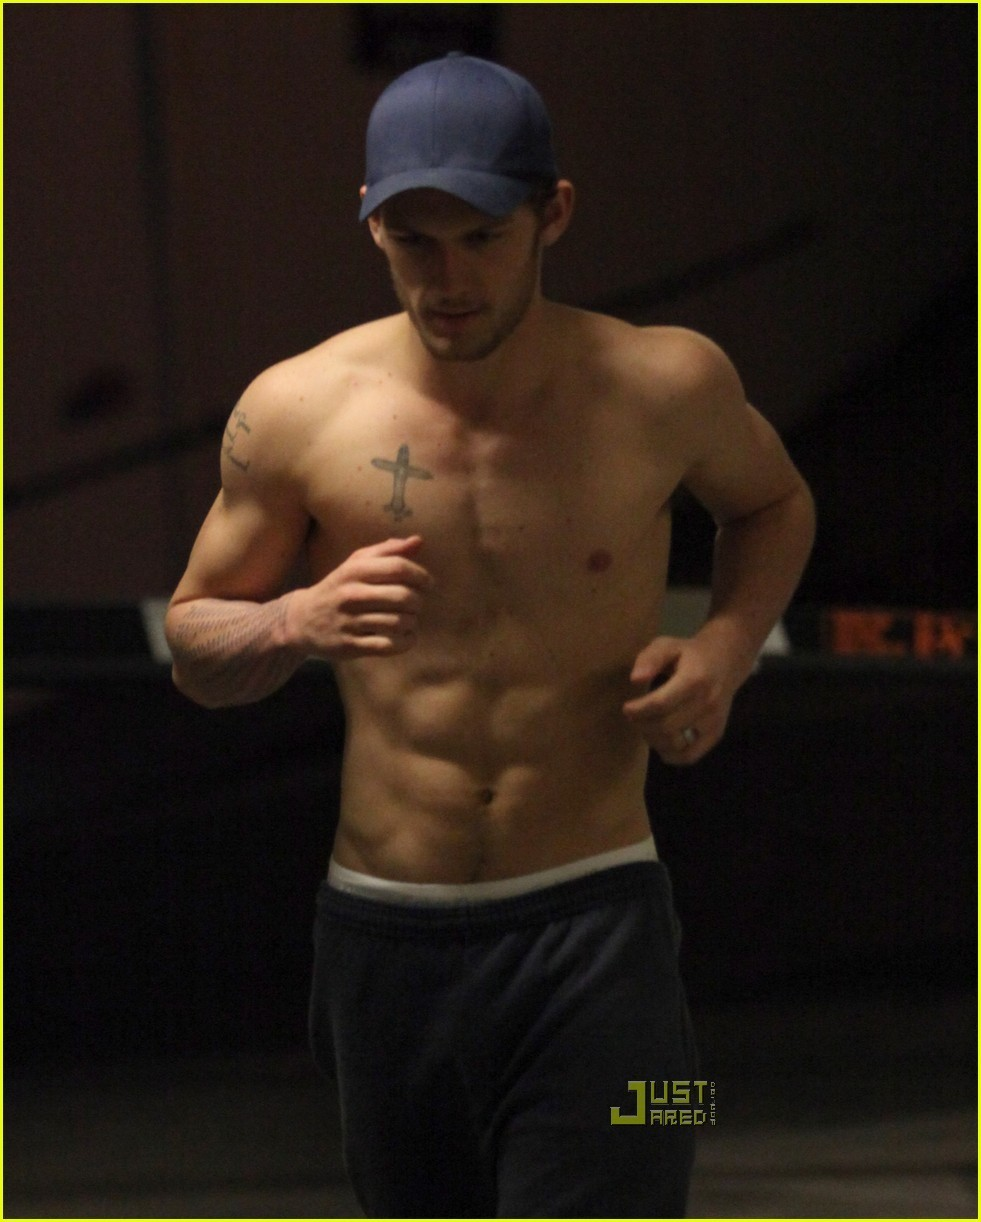 Alex Shirtless run